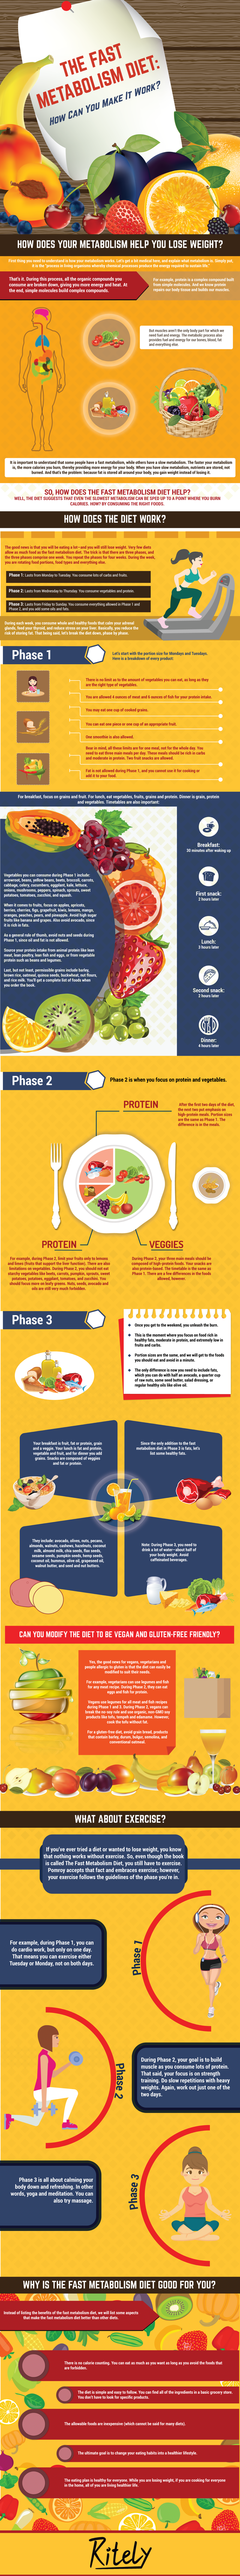 The Fast Metabolism Diet: How Can You Make It Work?